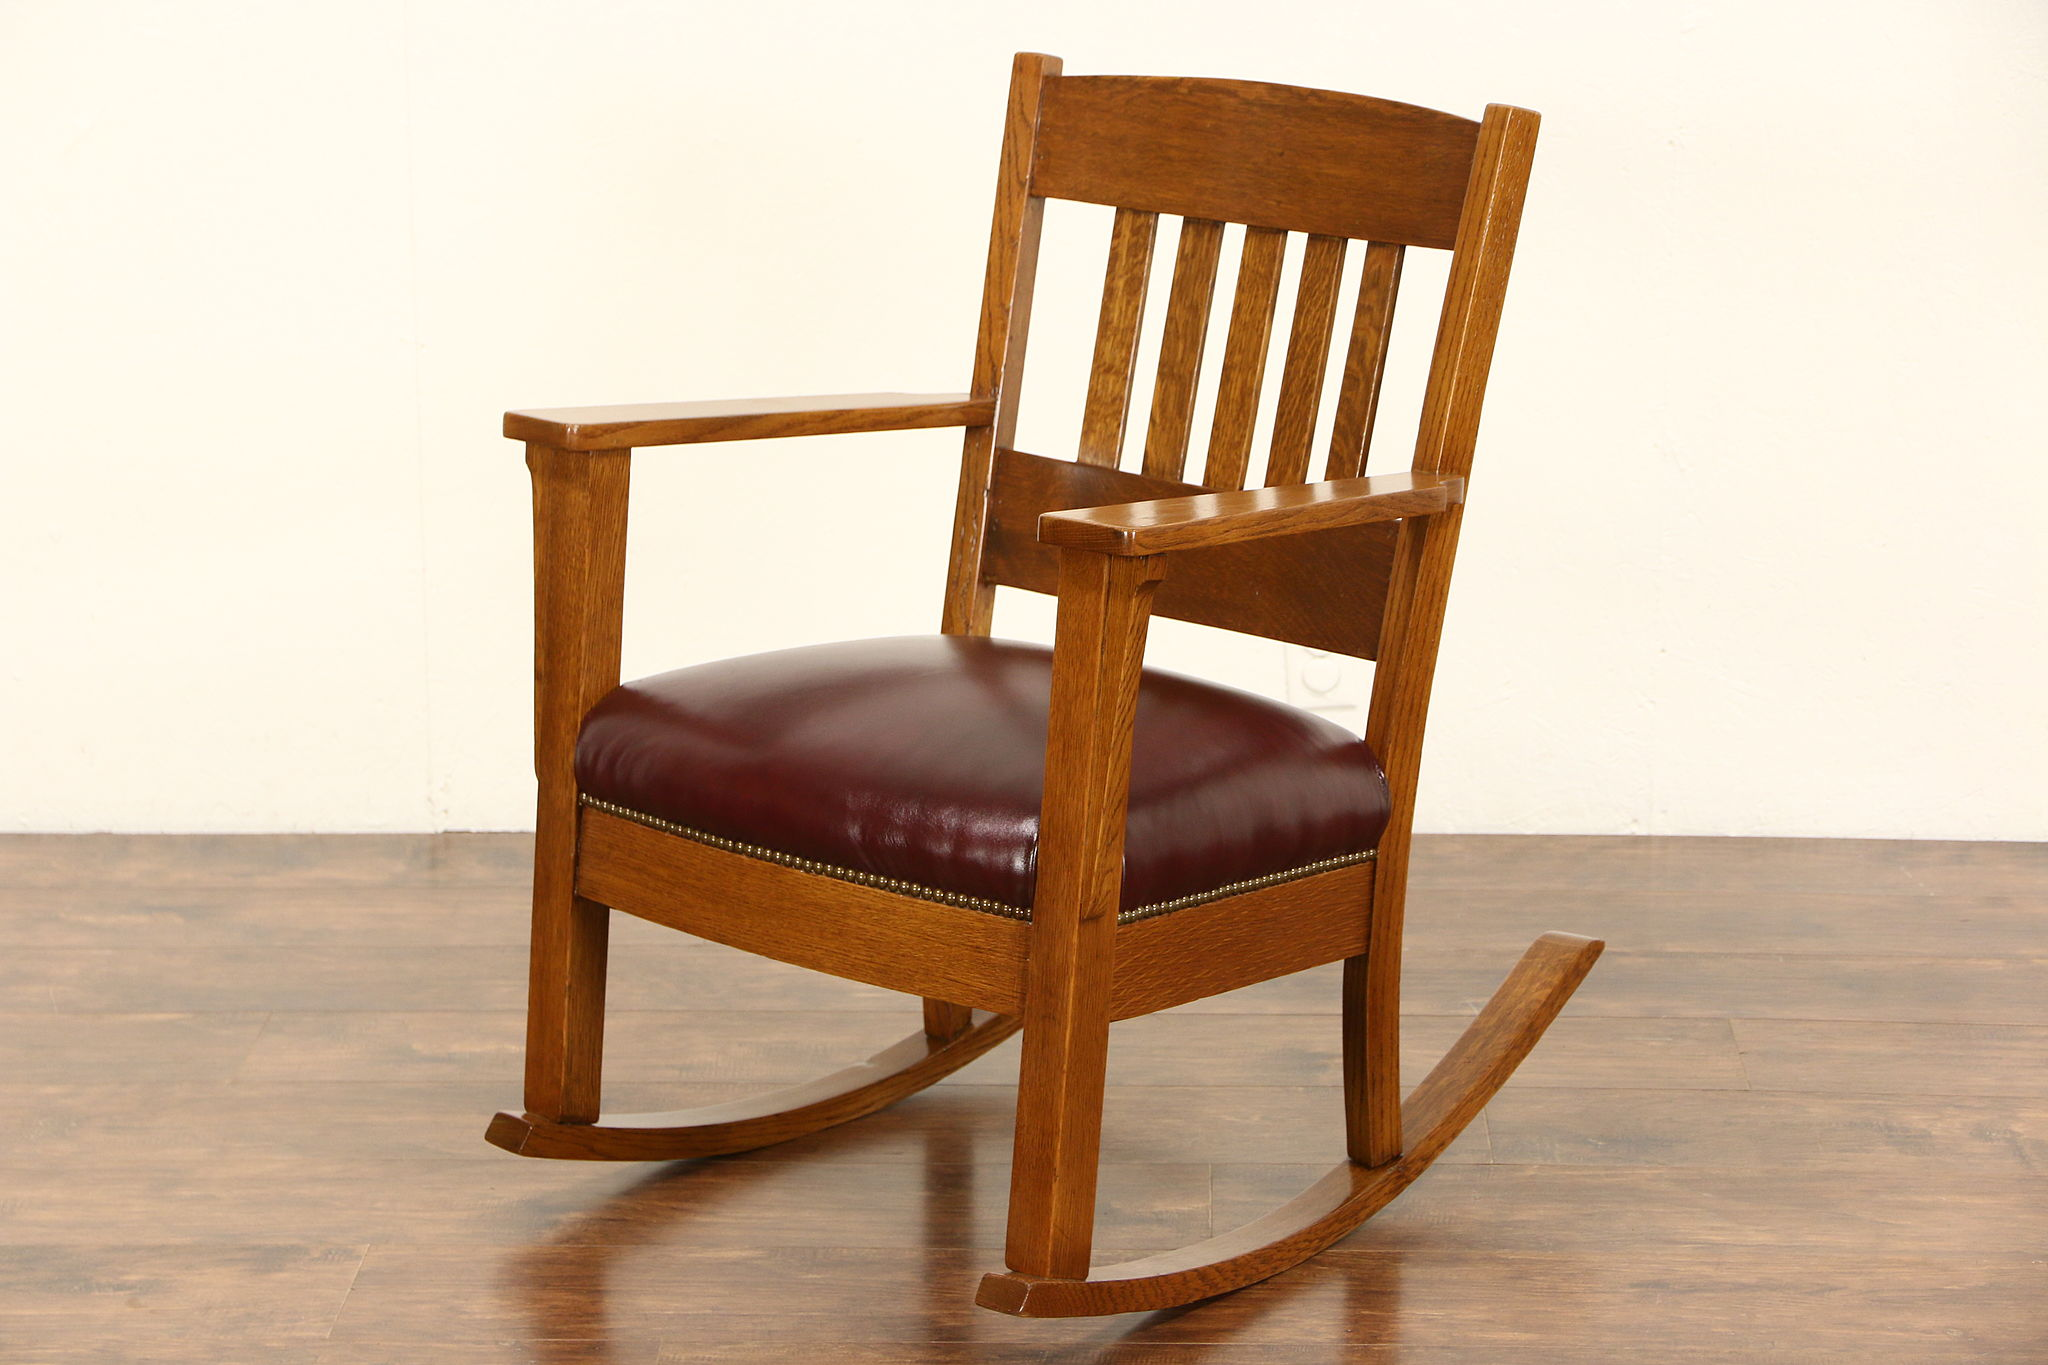 SOLD Rocker Arts & Crafts Mission Oak Antique 1905 Rocking Chair